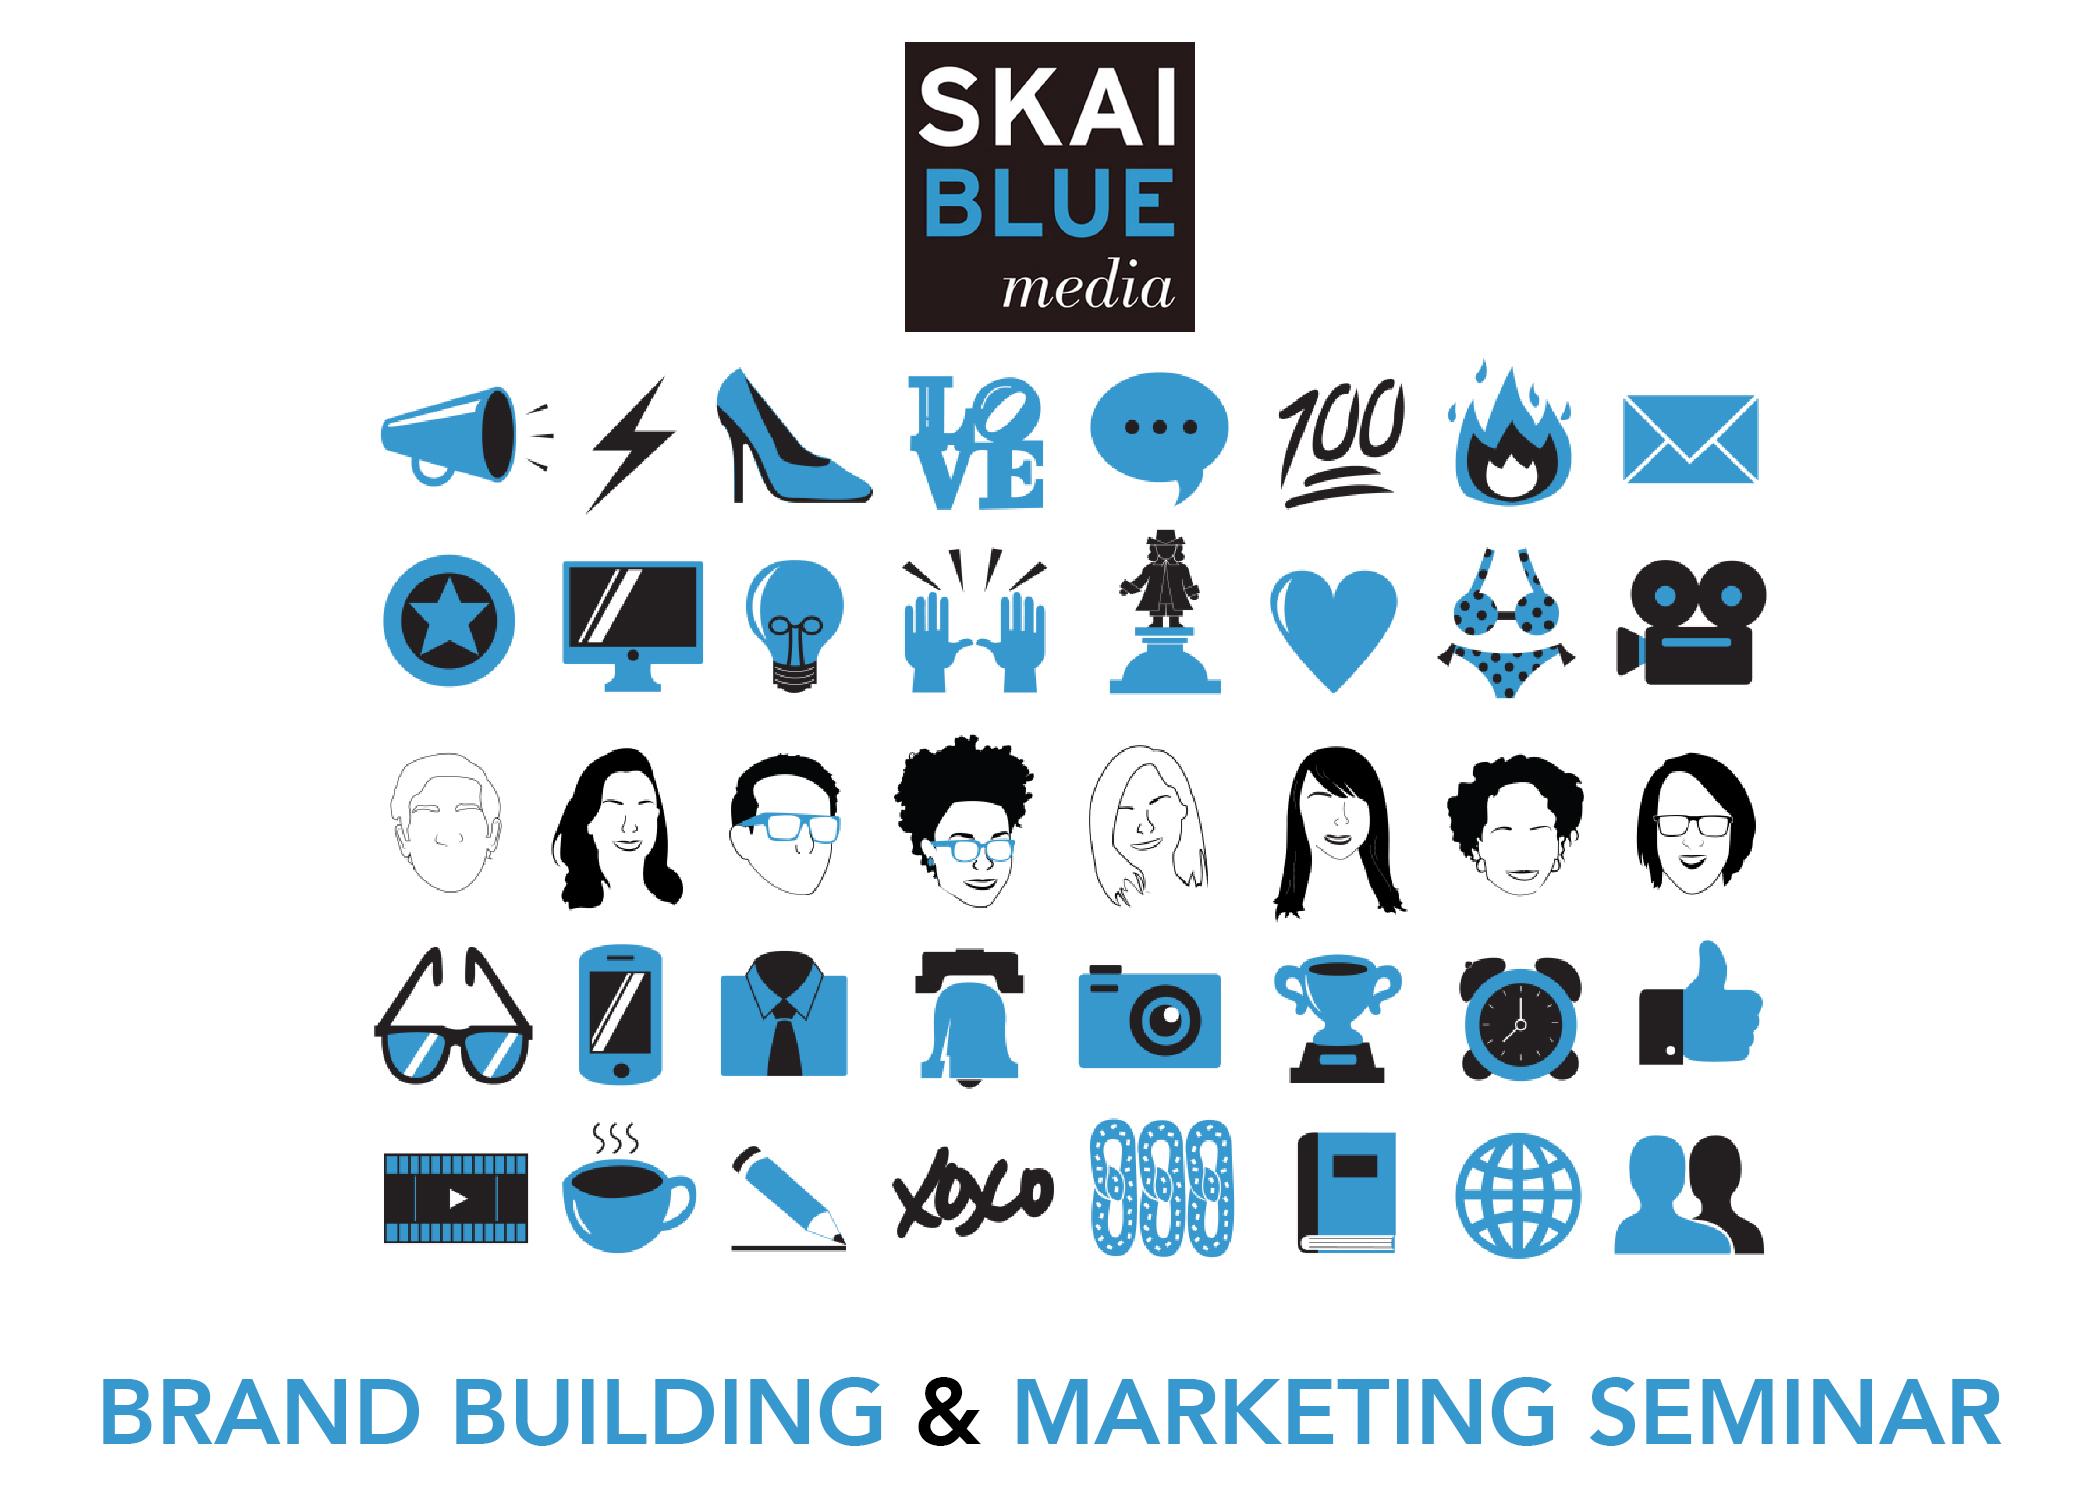 Creating a solid brand story is one of the most important things a new company will do. How do you get your product and message to your customer? Learn the tricks of the trade in Marketing and Brand Building from Javier Alonzo,  Skai Blue Media 's Creative Director.  Thursday, February 15th 6:30-8:30pm @Made Institute 448 N 10th Street #501 Philadelphia, PA 19123